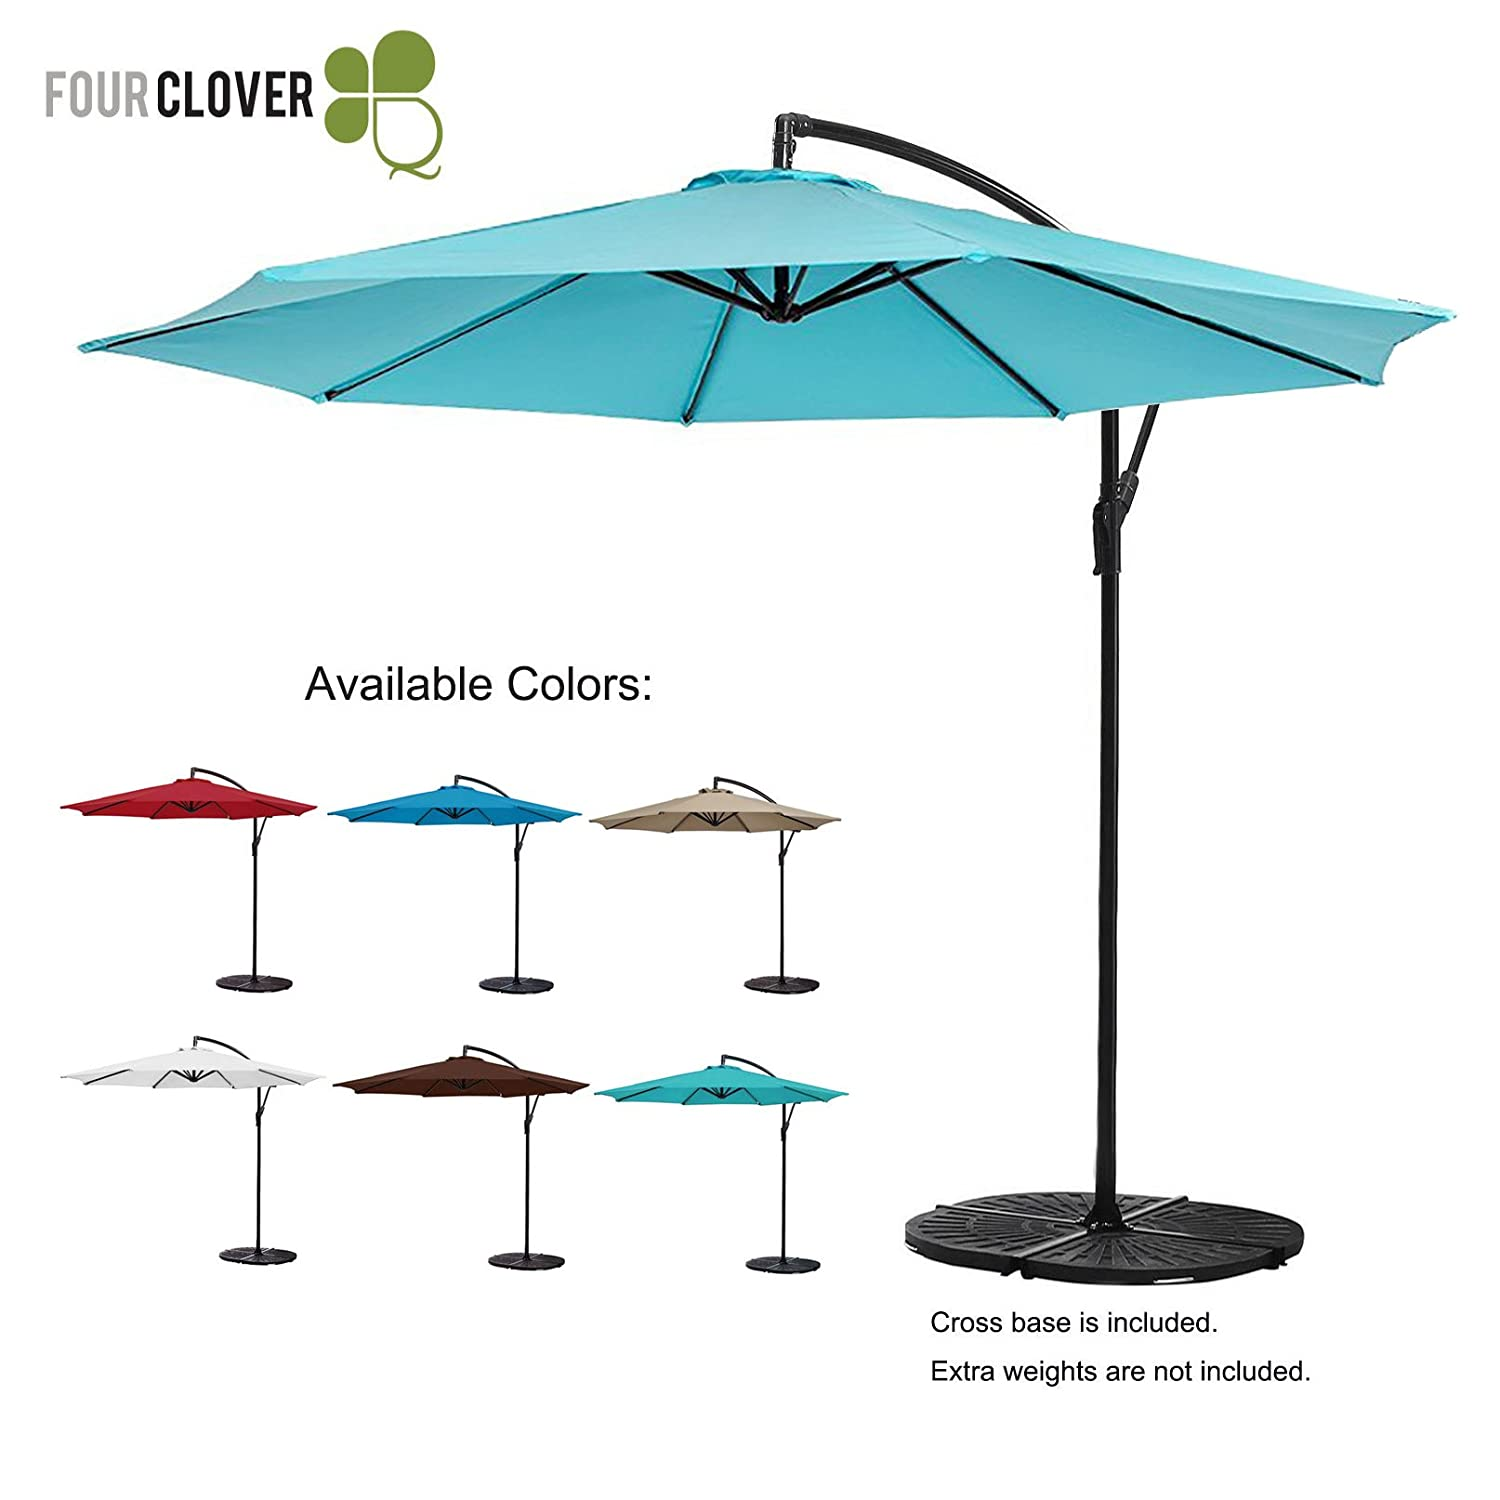 FOUR CLOVER 10 Ft Patio Umbrella Offset Hanging Umbrella Outdoor Market Umbrella Garden Umbrella, 250g/sqm Polyester, with Cross Base and Crank (Turquoise) B074YB99GG